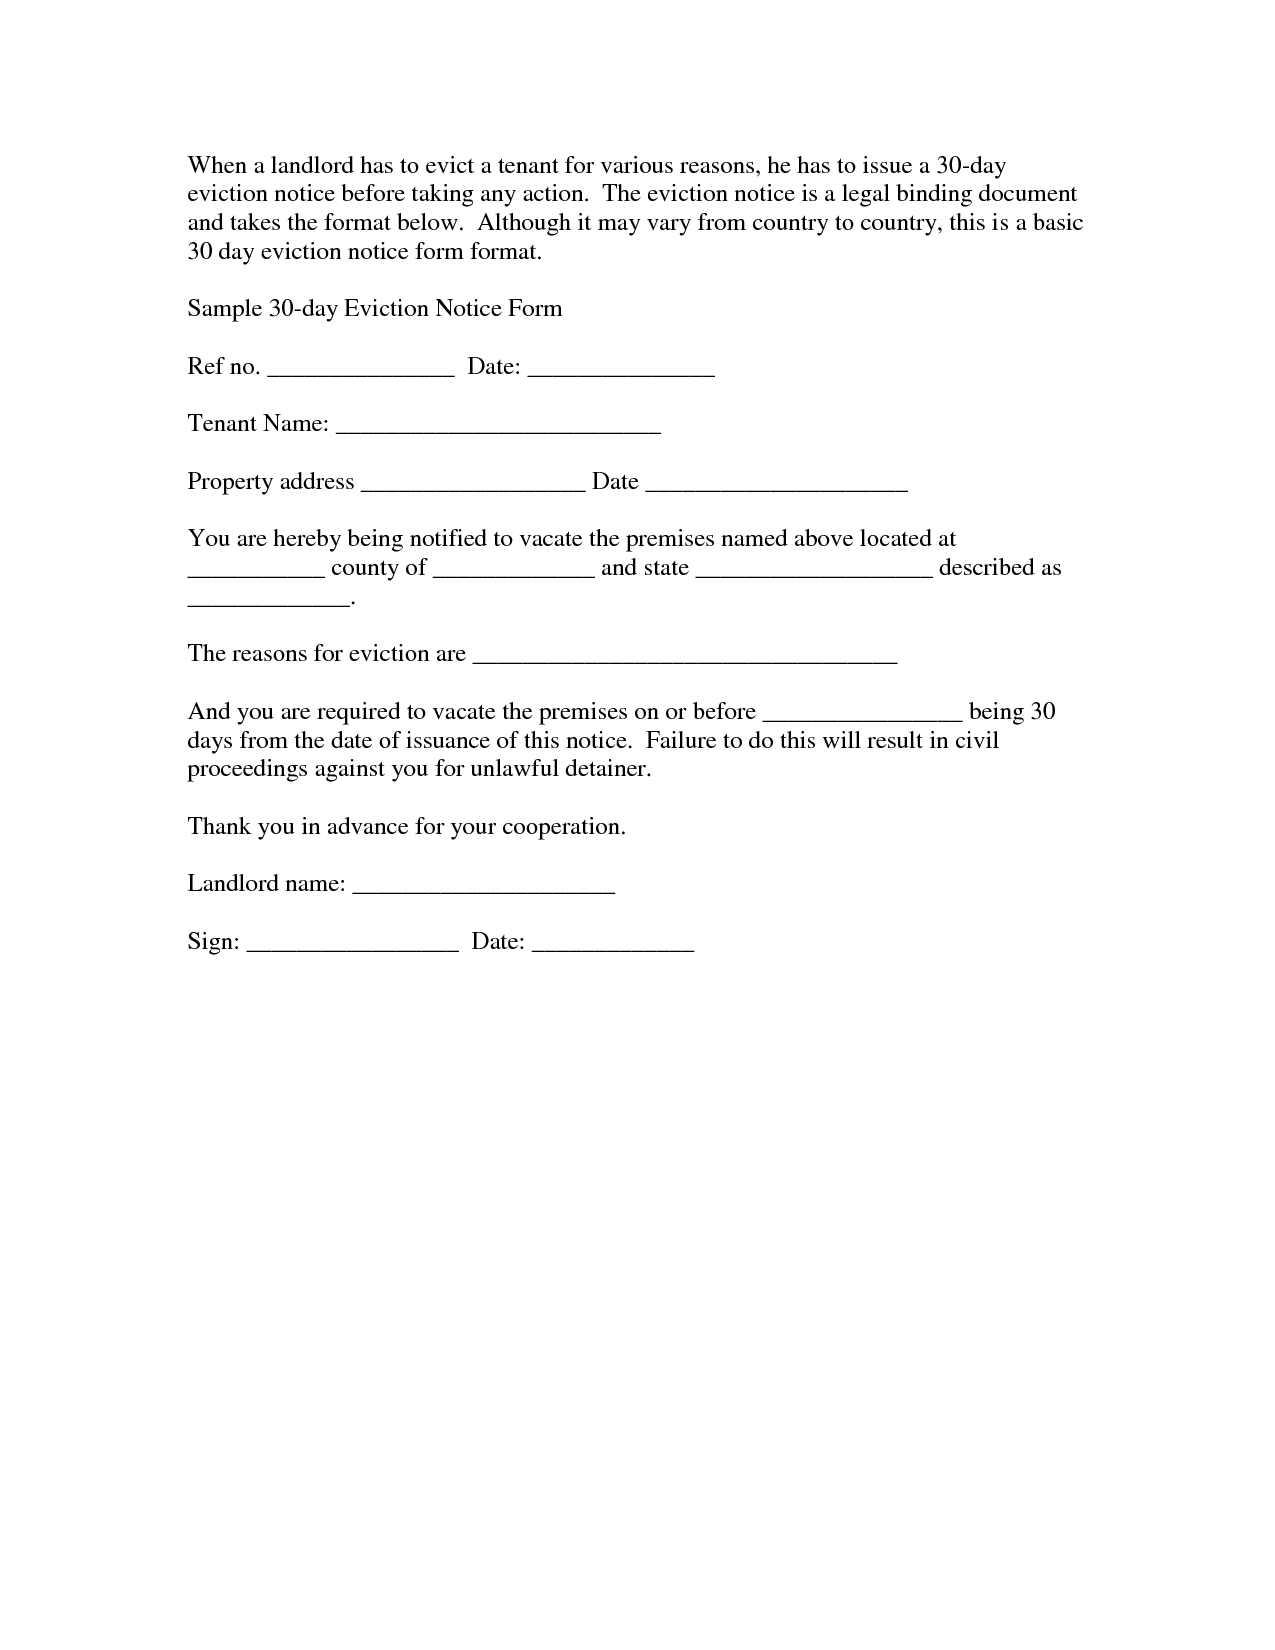 Notice Of Eviction Letter Template - Seeabruzzo - 30 Day Eviction - Free Printable Eviction Notice